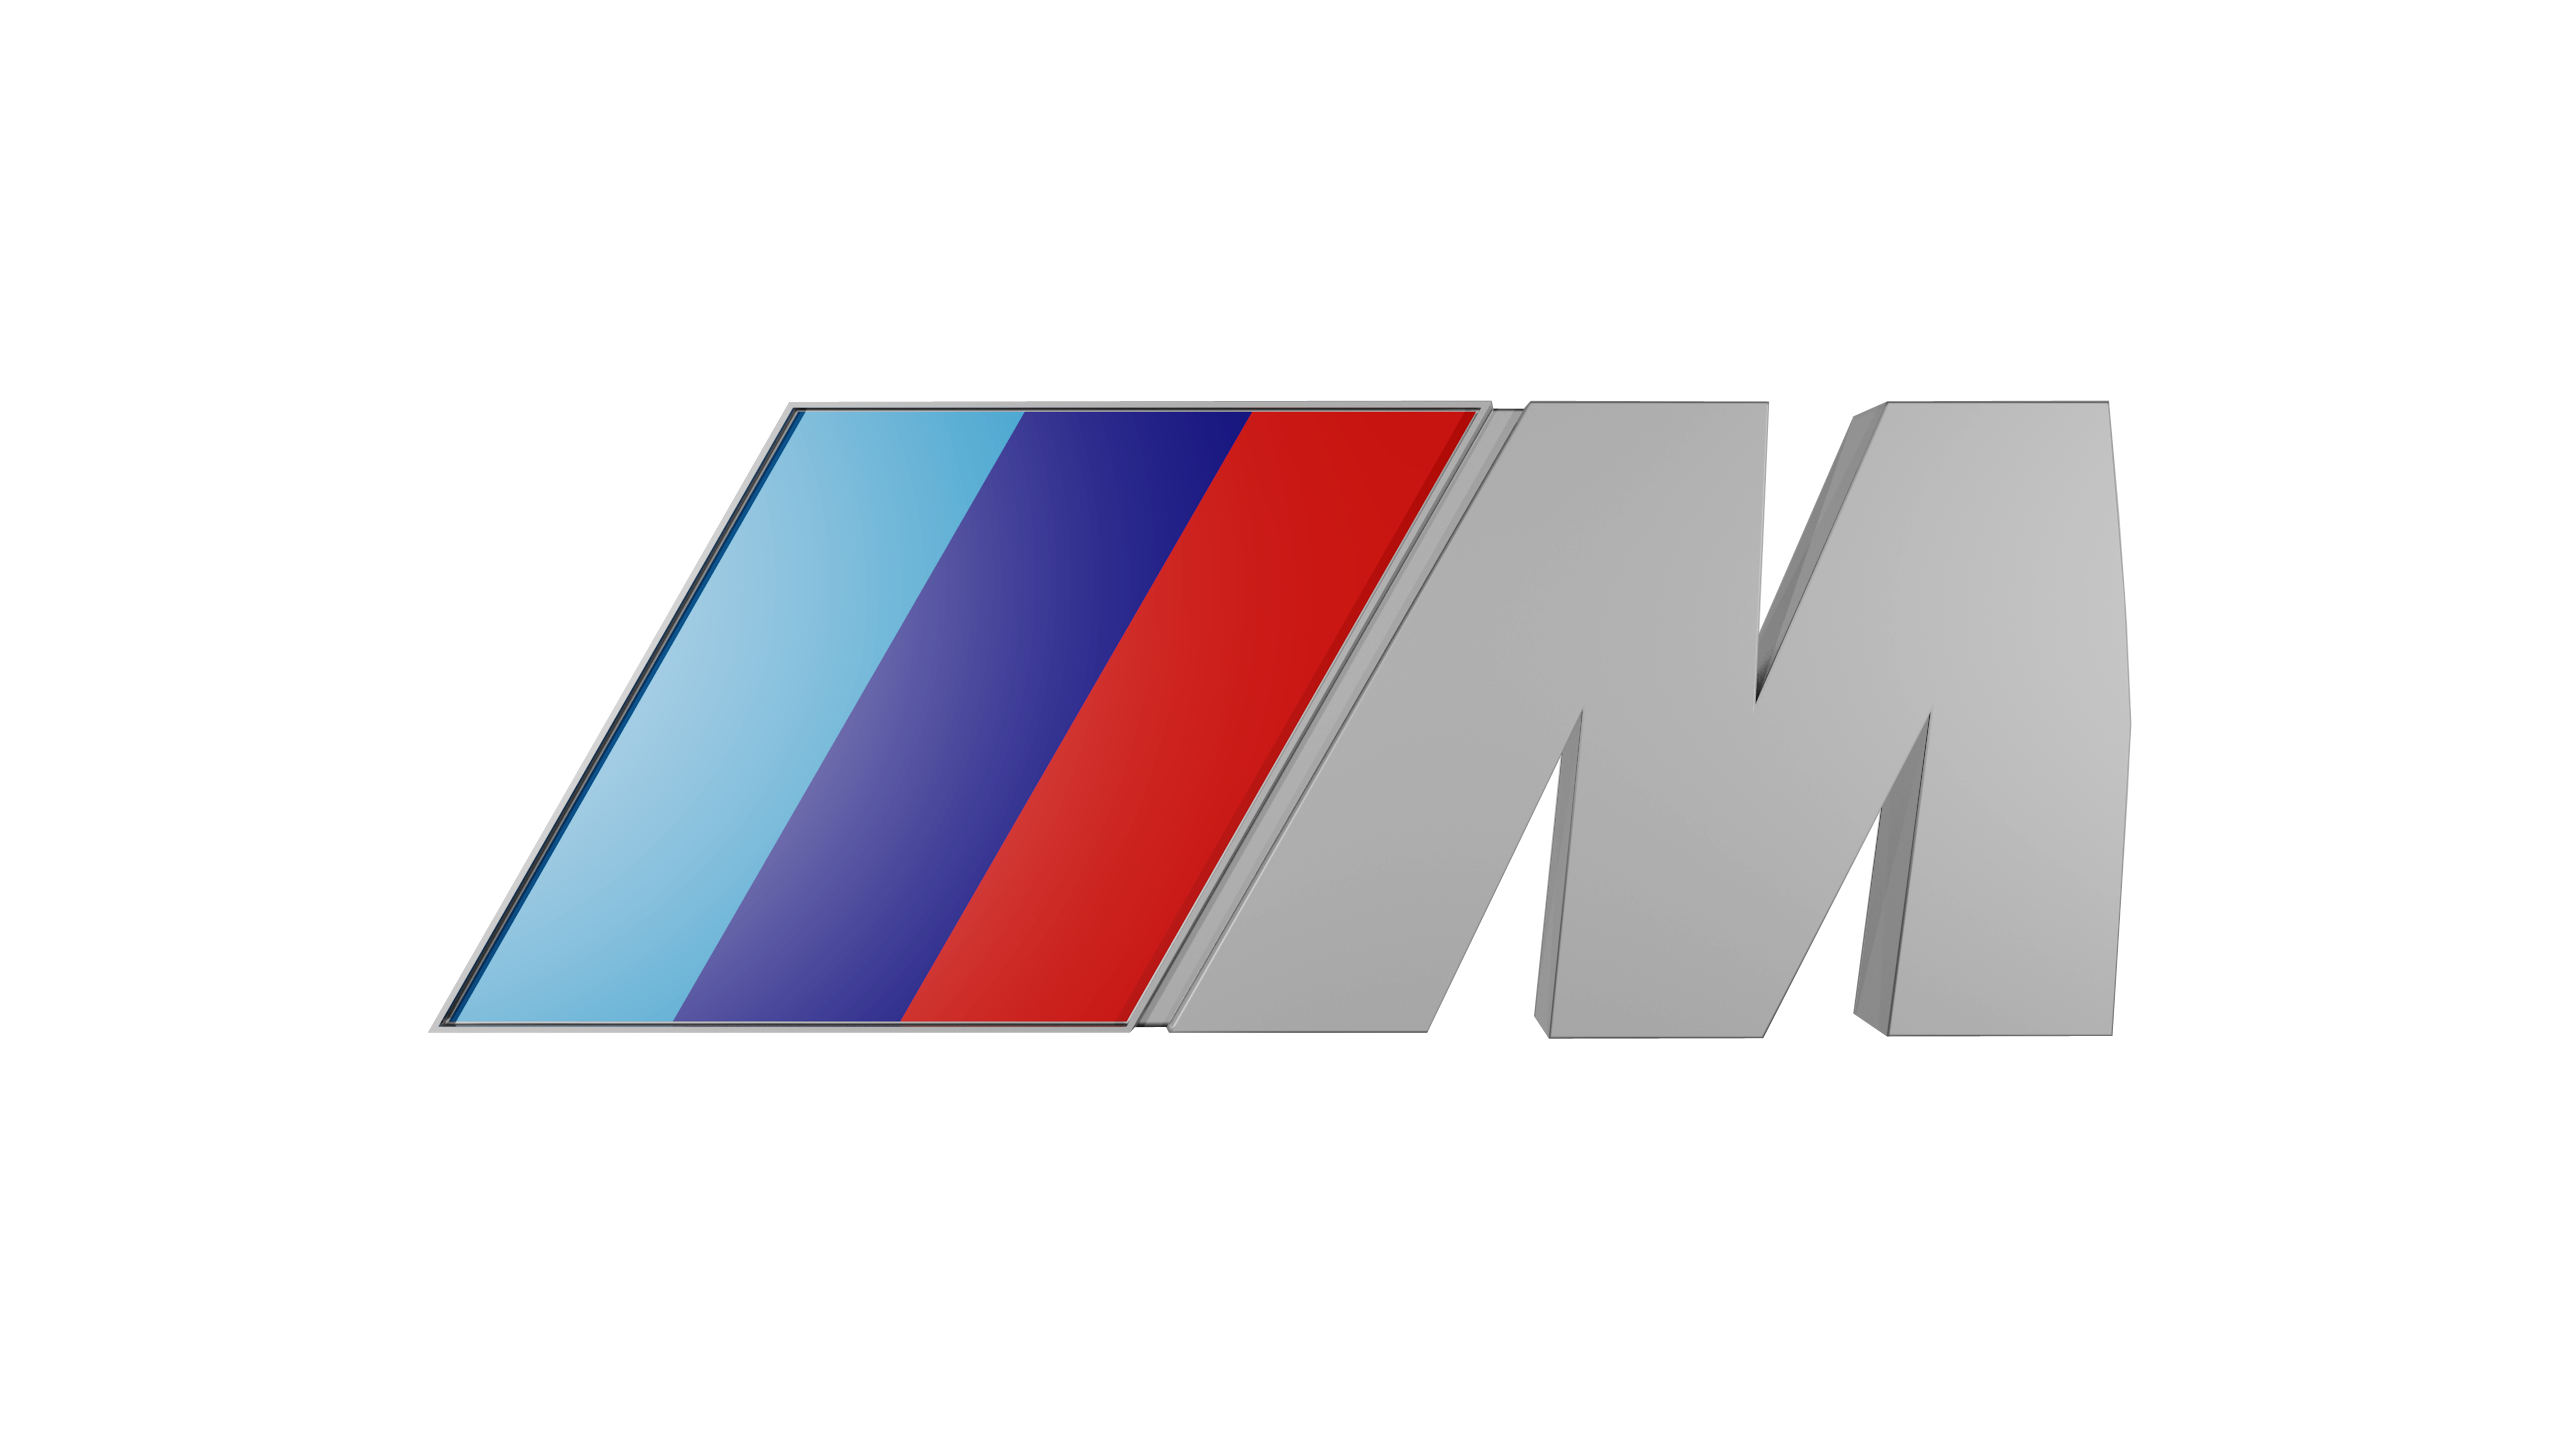 Bmw m png. Logo hd meaning information